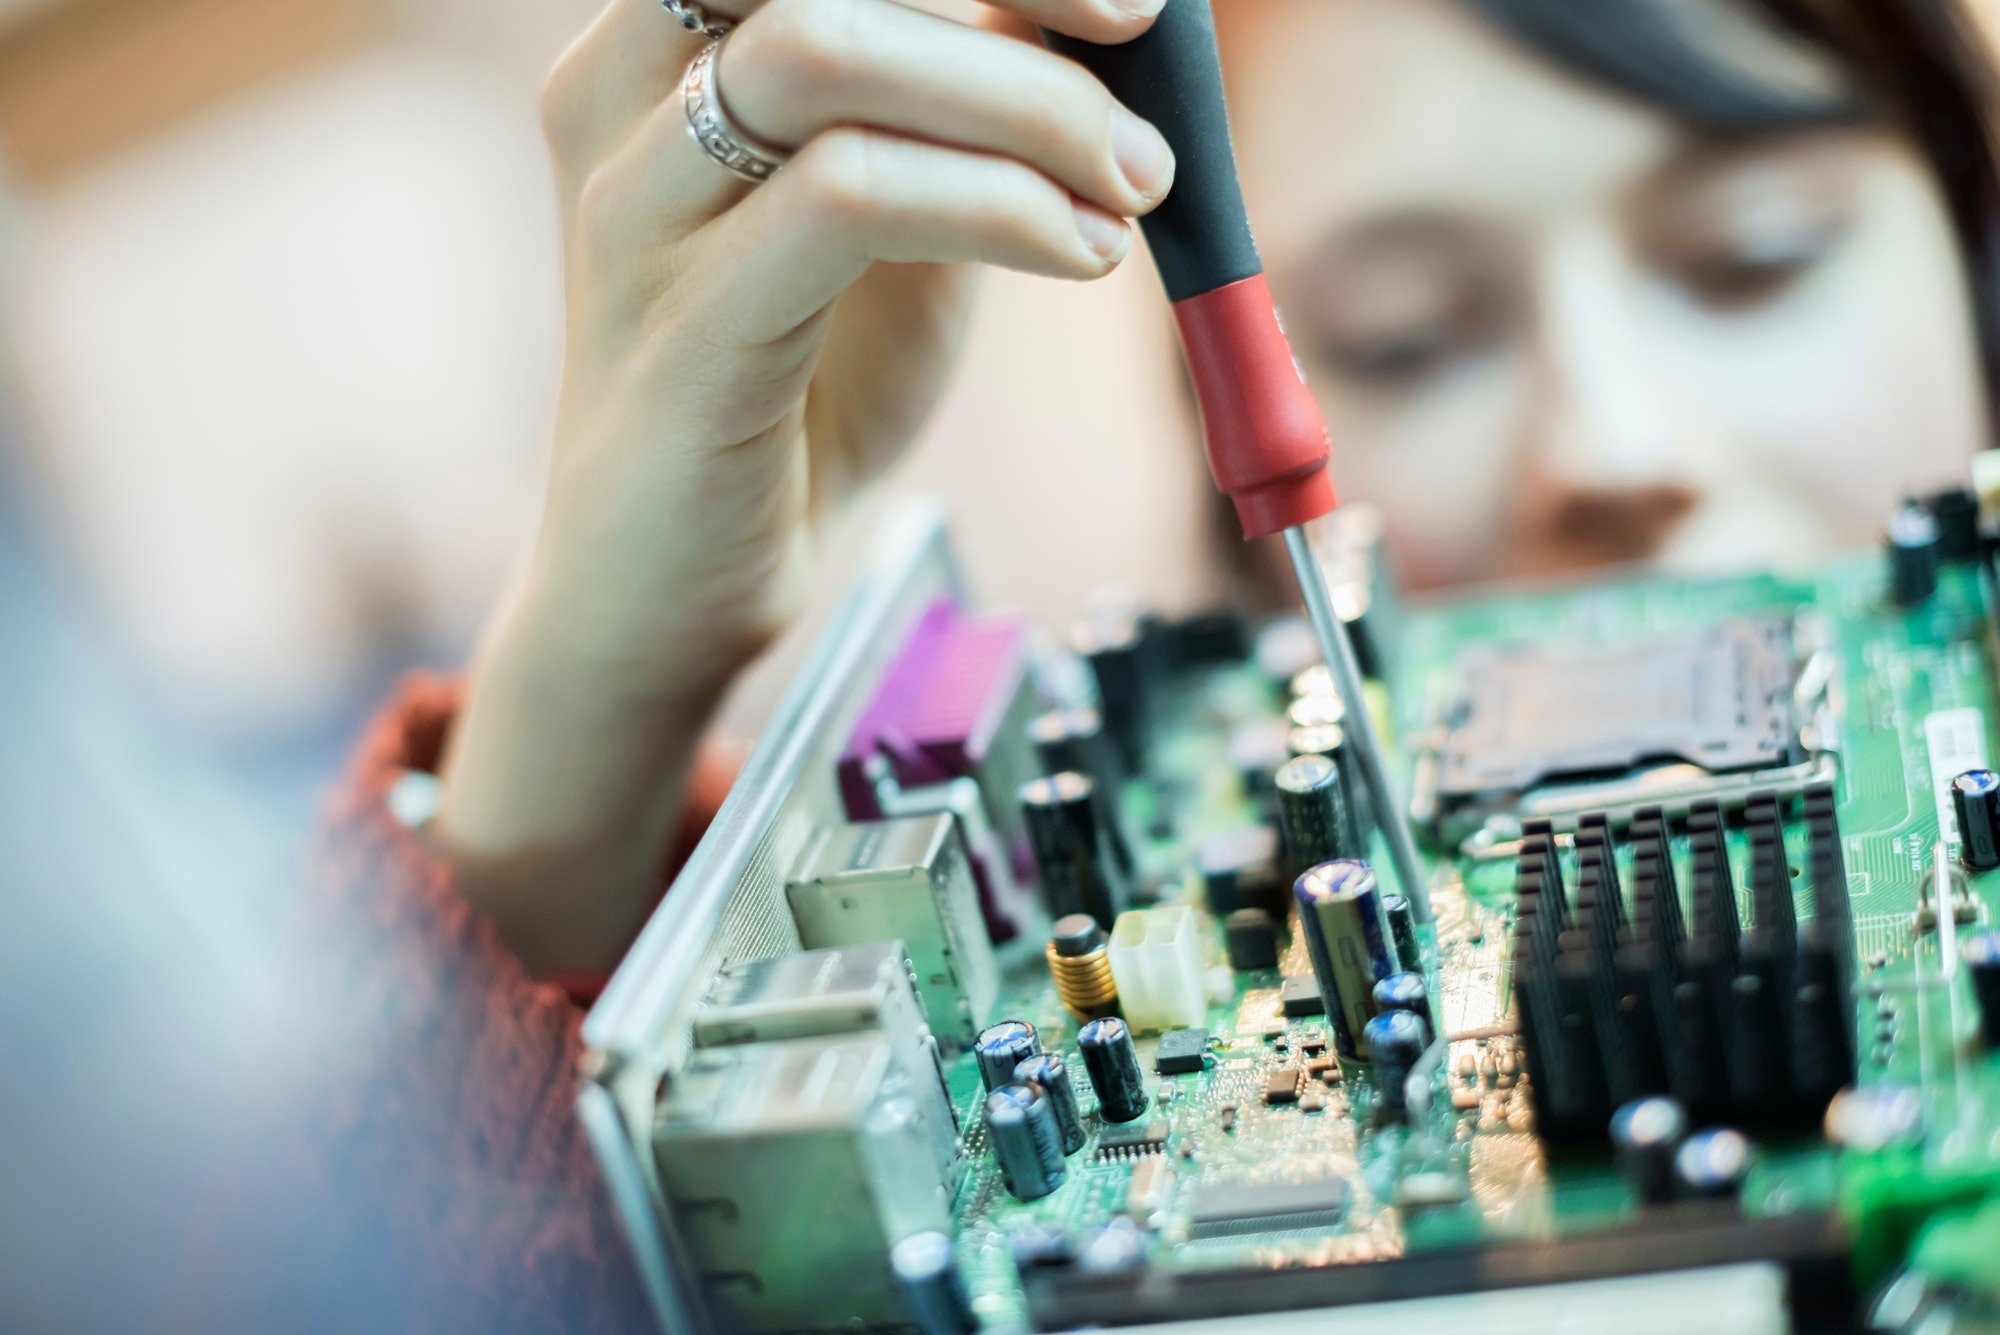 A woman using an electronic screwdriver on a computer circuitboard.